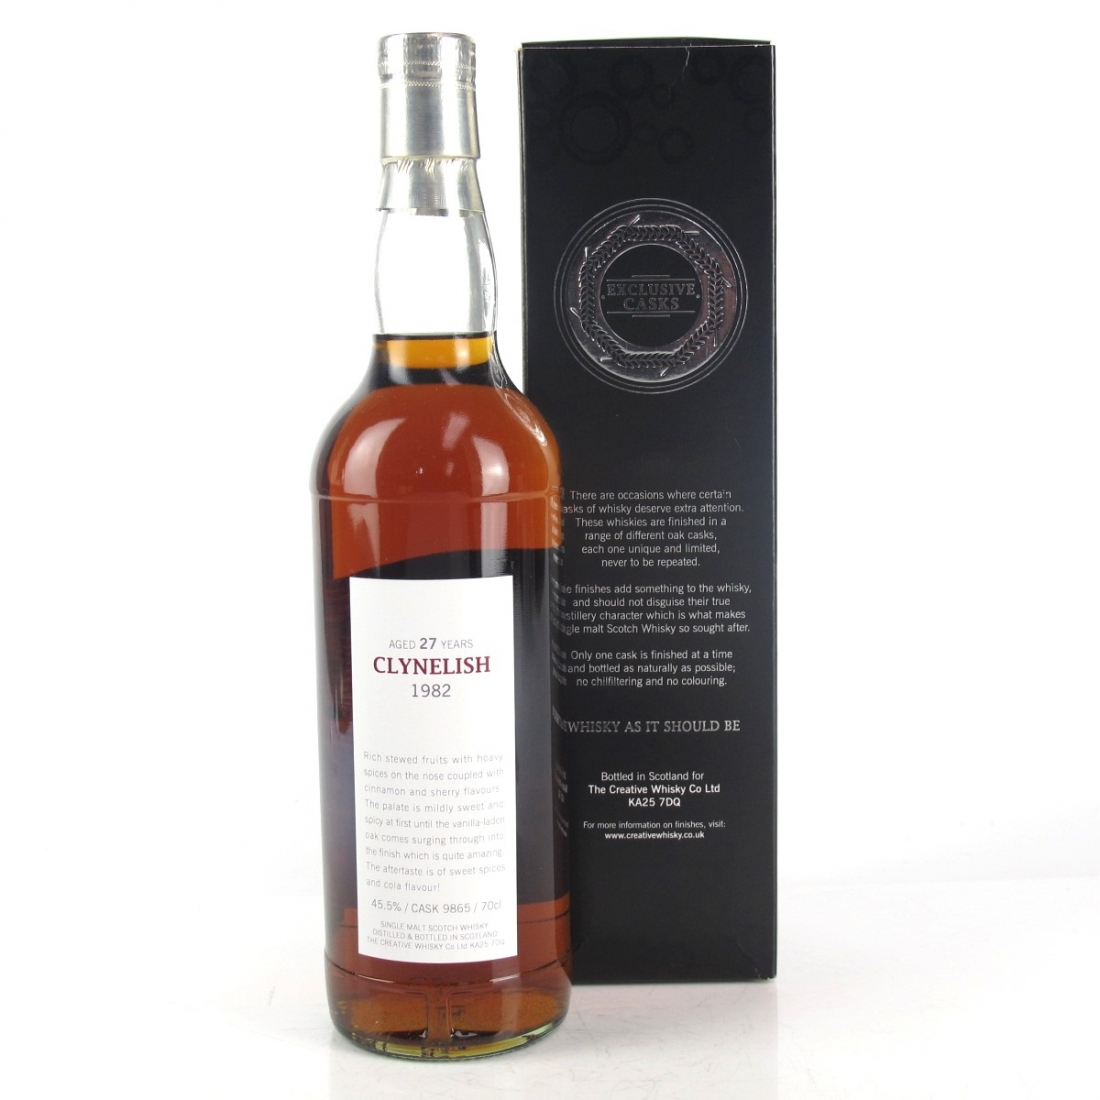 Clynelish 1982 Creative Whisky 27 Year Old